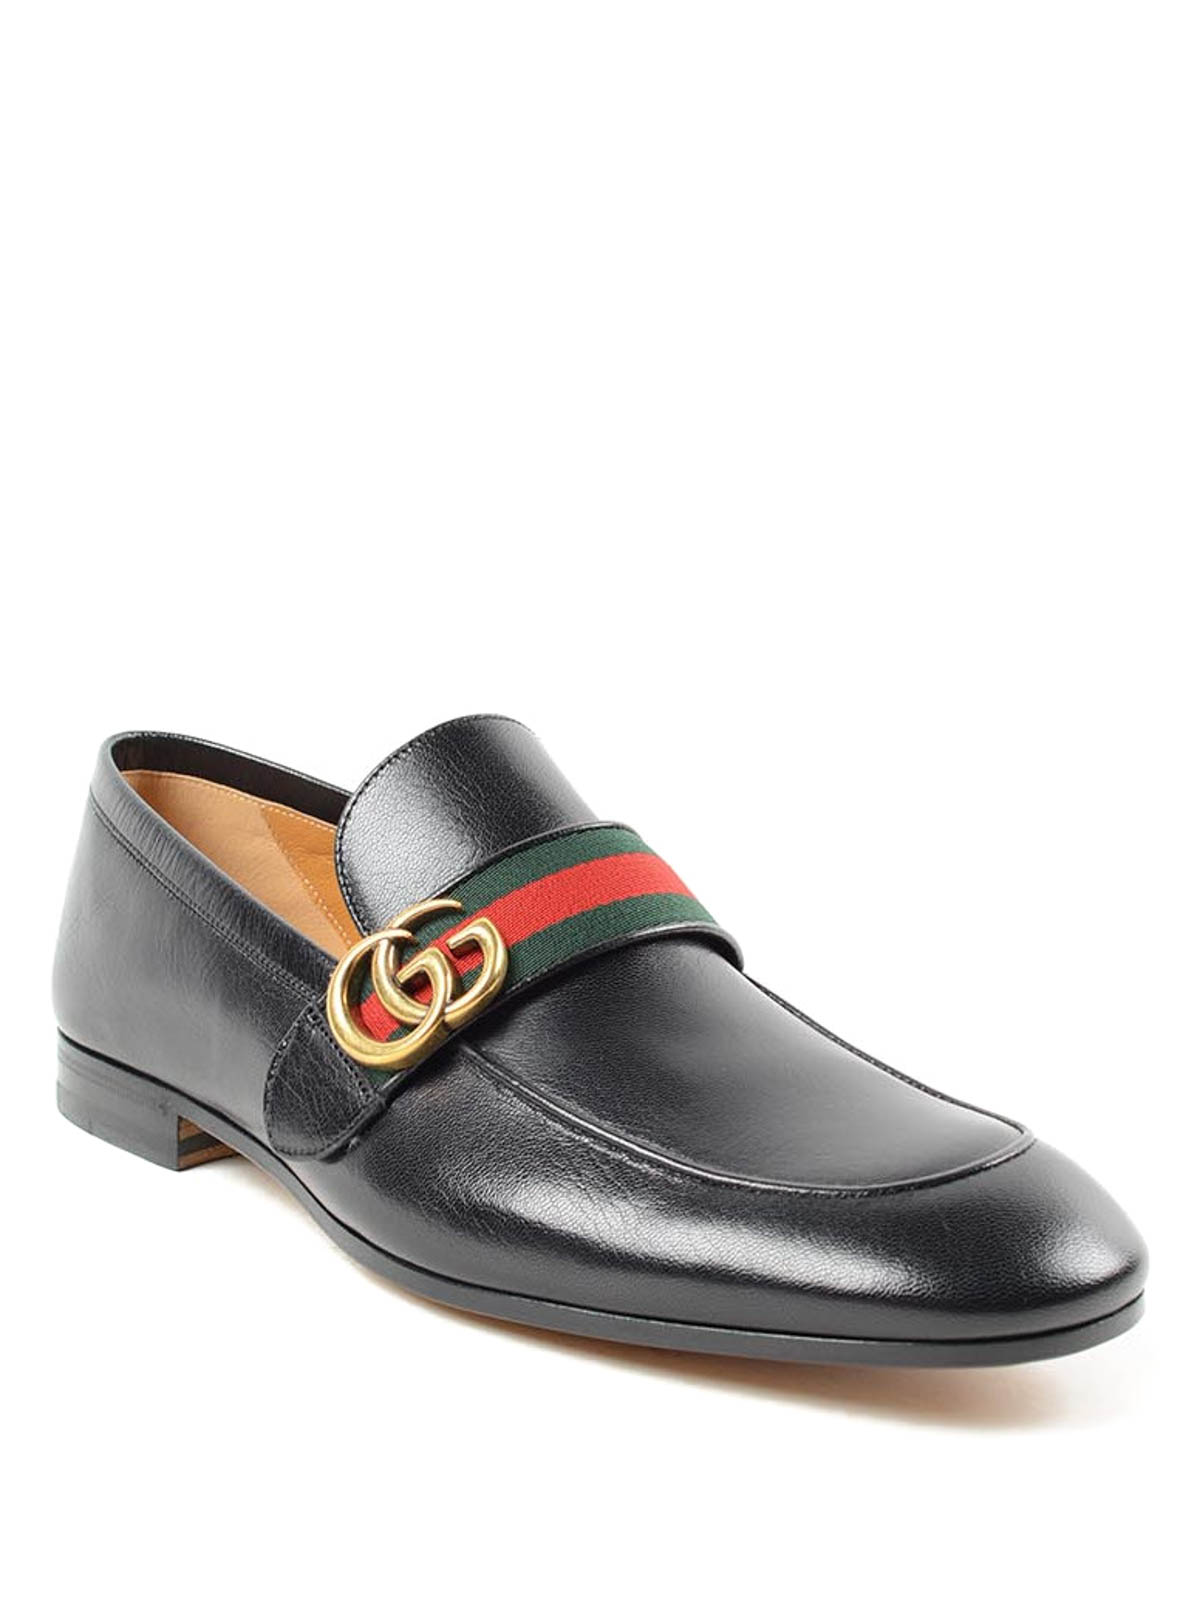 Gucci - GG and Web leather loafers